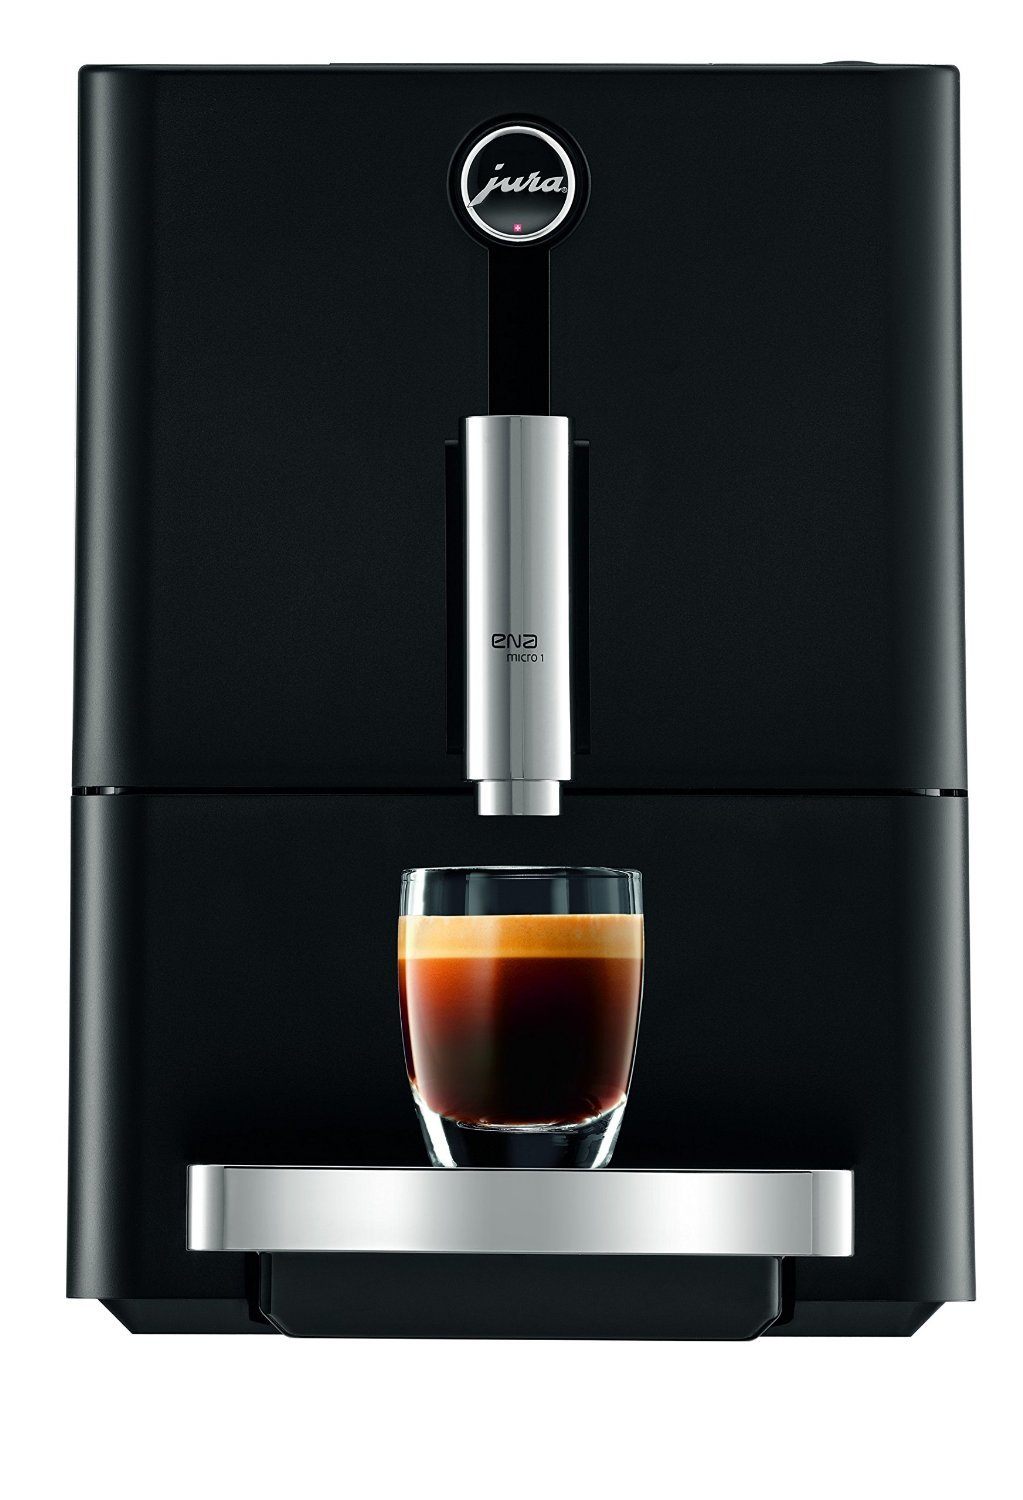 jura ena micro 1 test kaffeevollautomat. Black Bedroom Furniture Sets. Home Design Ideas